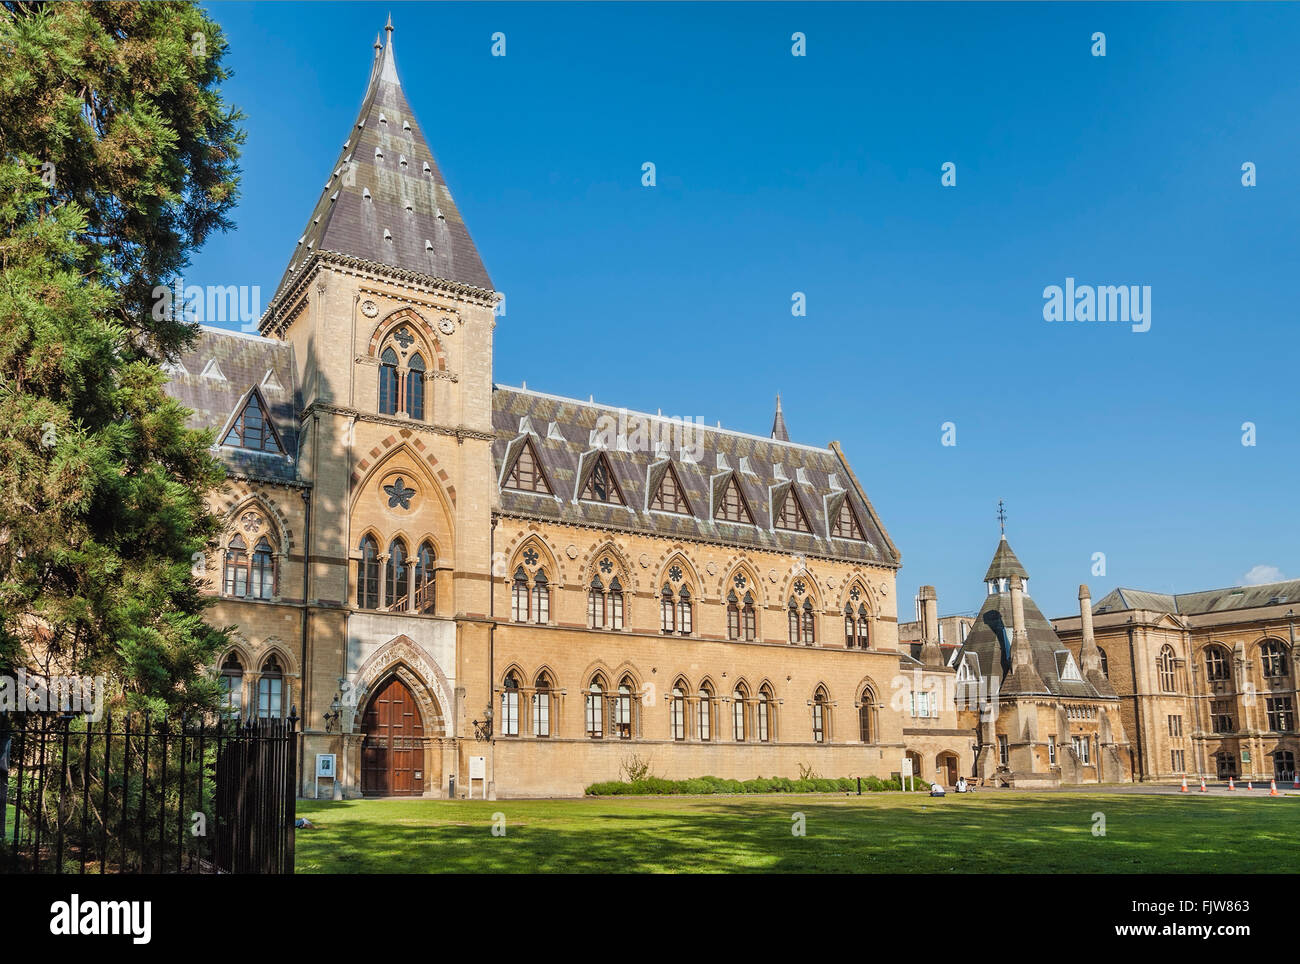 Oxford University Museum of Natural History, Oxfordshire, England - Stock Image